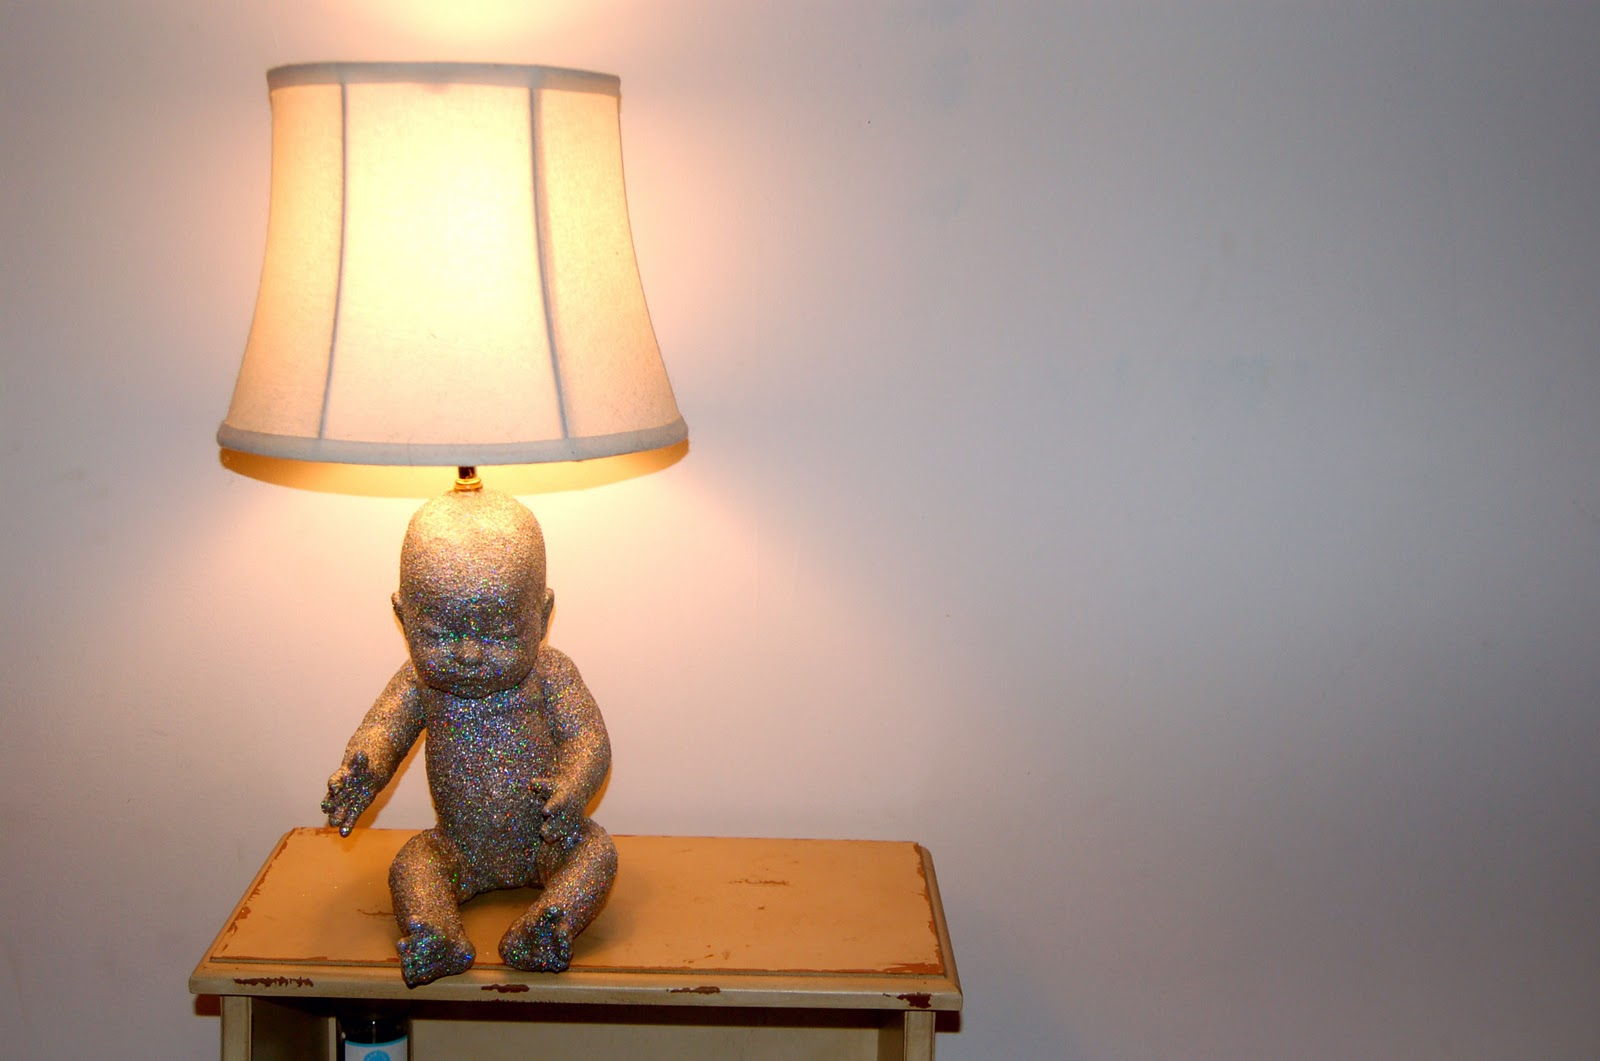 Then Pop The Plug Into An Outlet, Put In A Light Bulb, And Turn That Baby  On! (is That Too Literal?)